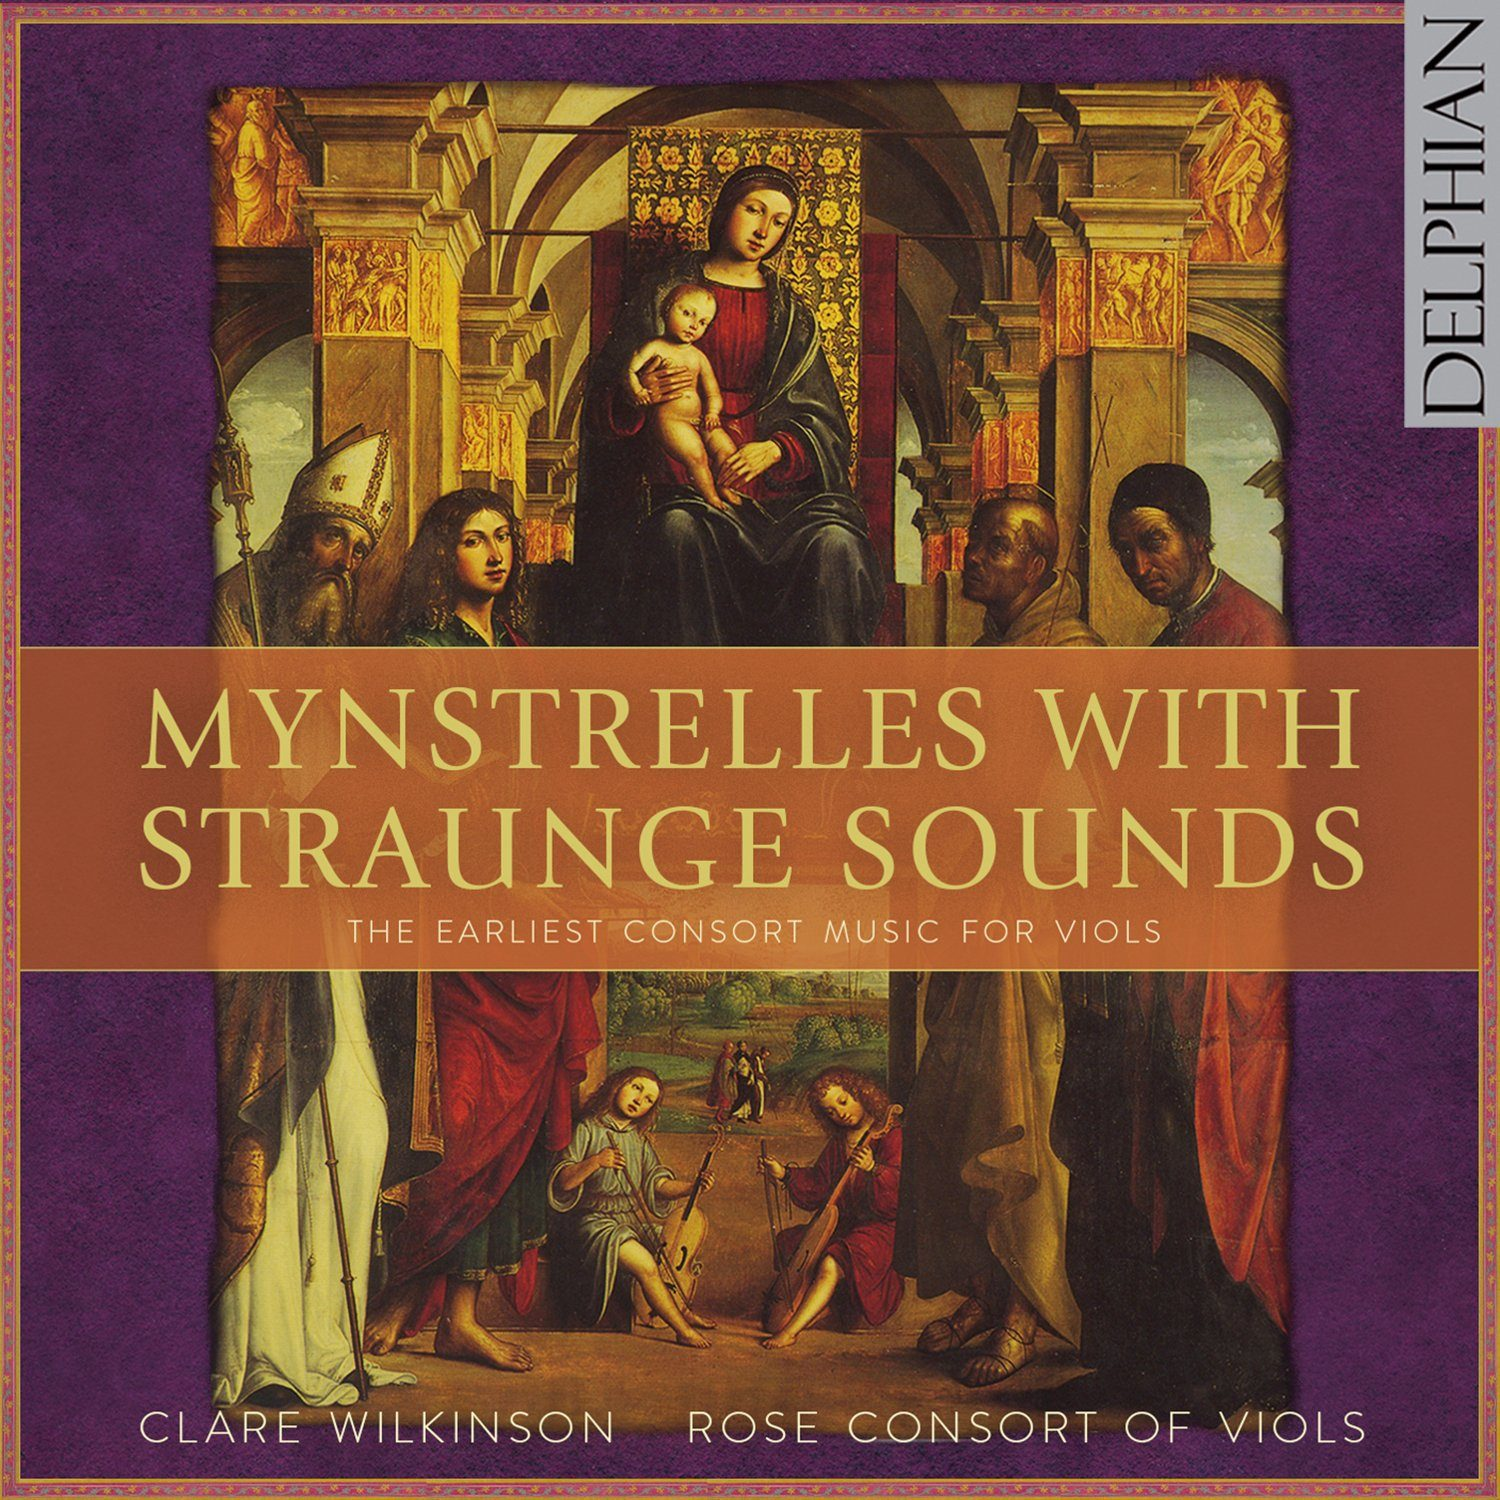 Mynstrelles with Straunge Sounds: the earliest consort music for viols CD Delphian Records